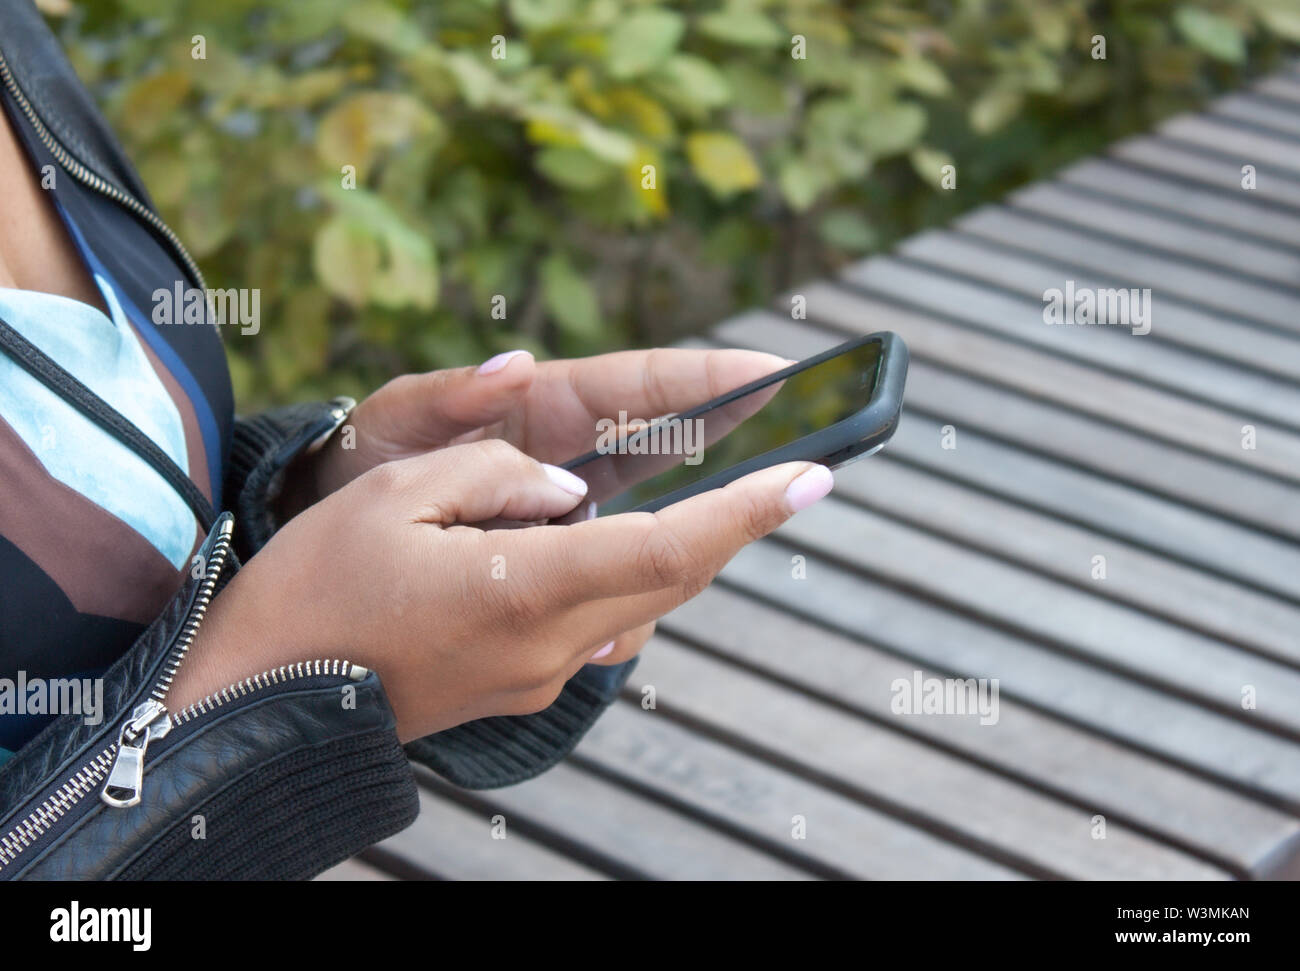 Girl holding black cellphone in her hands sitting on bench. - Stock Image